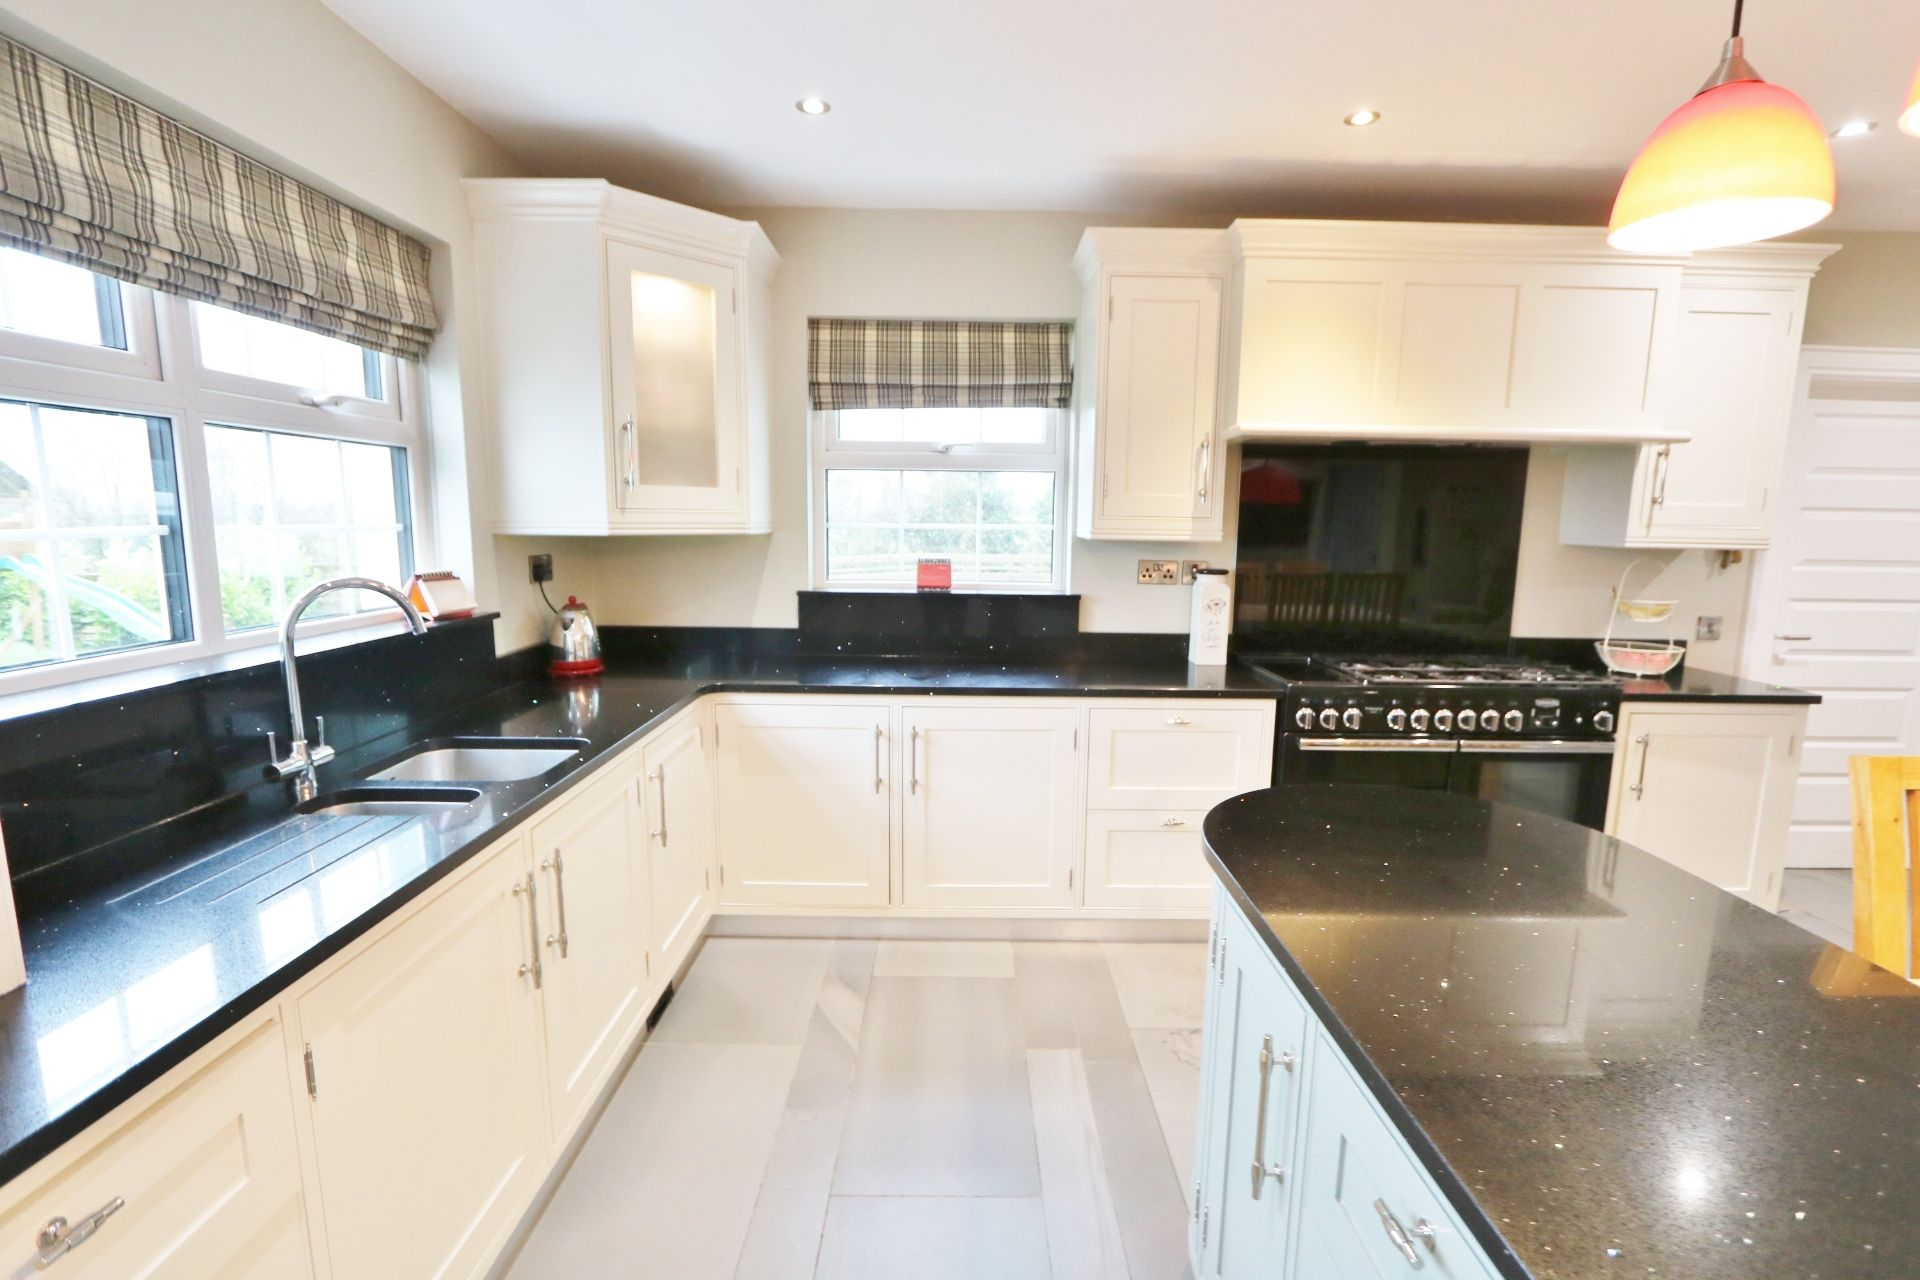 5 bedroom detached house Under Offer in Crumlin - Photograph 5